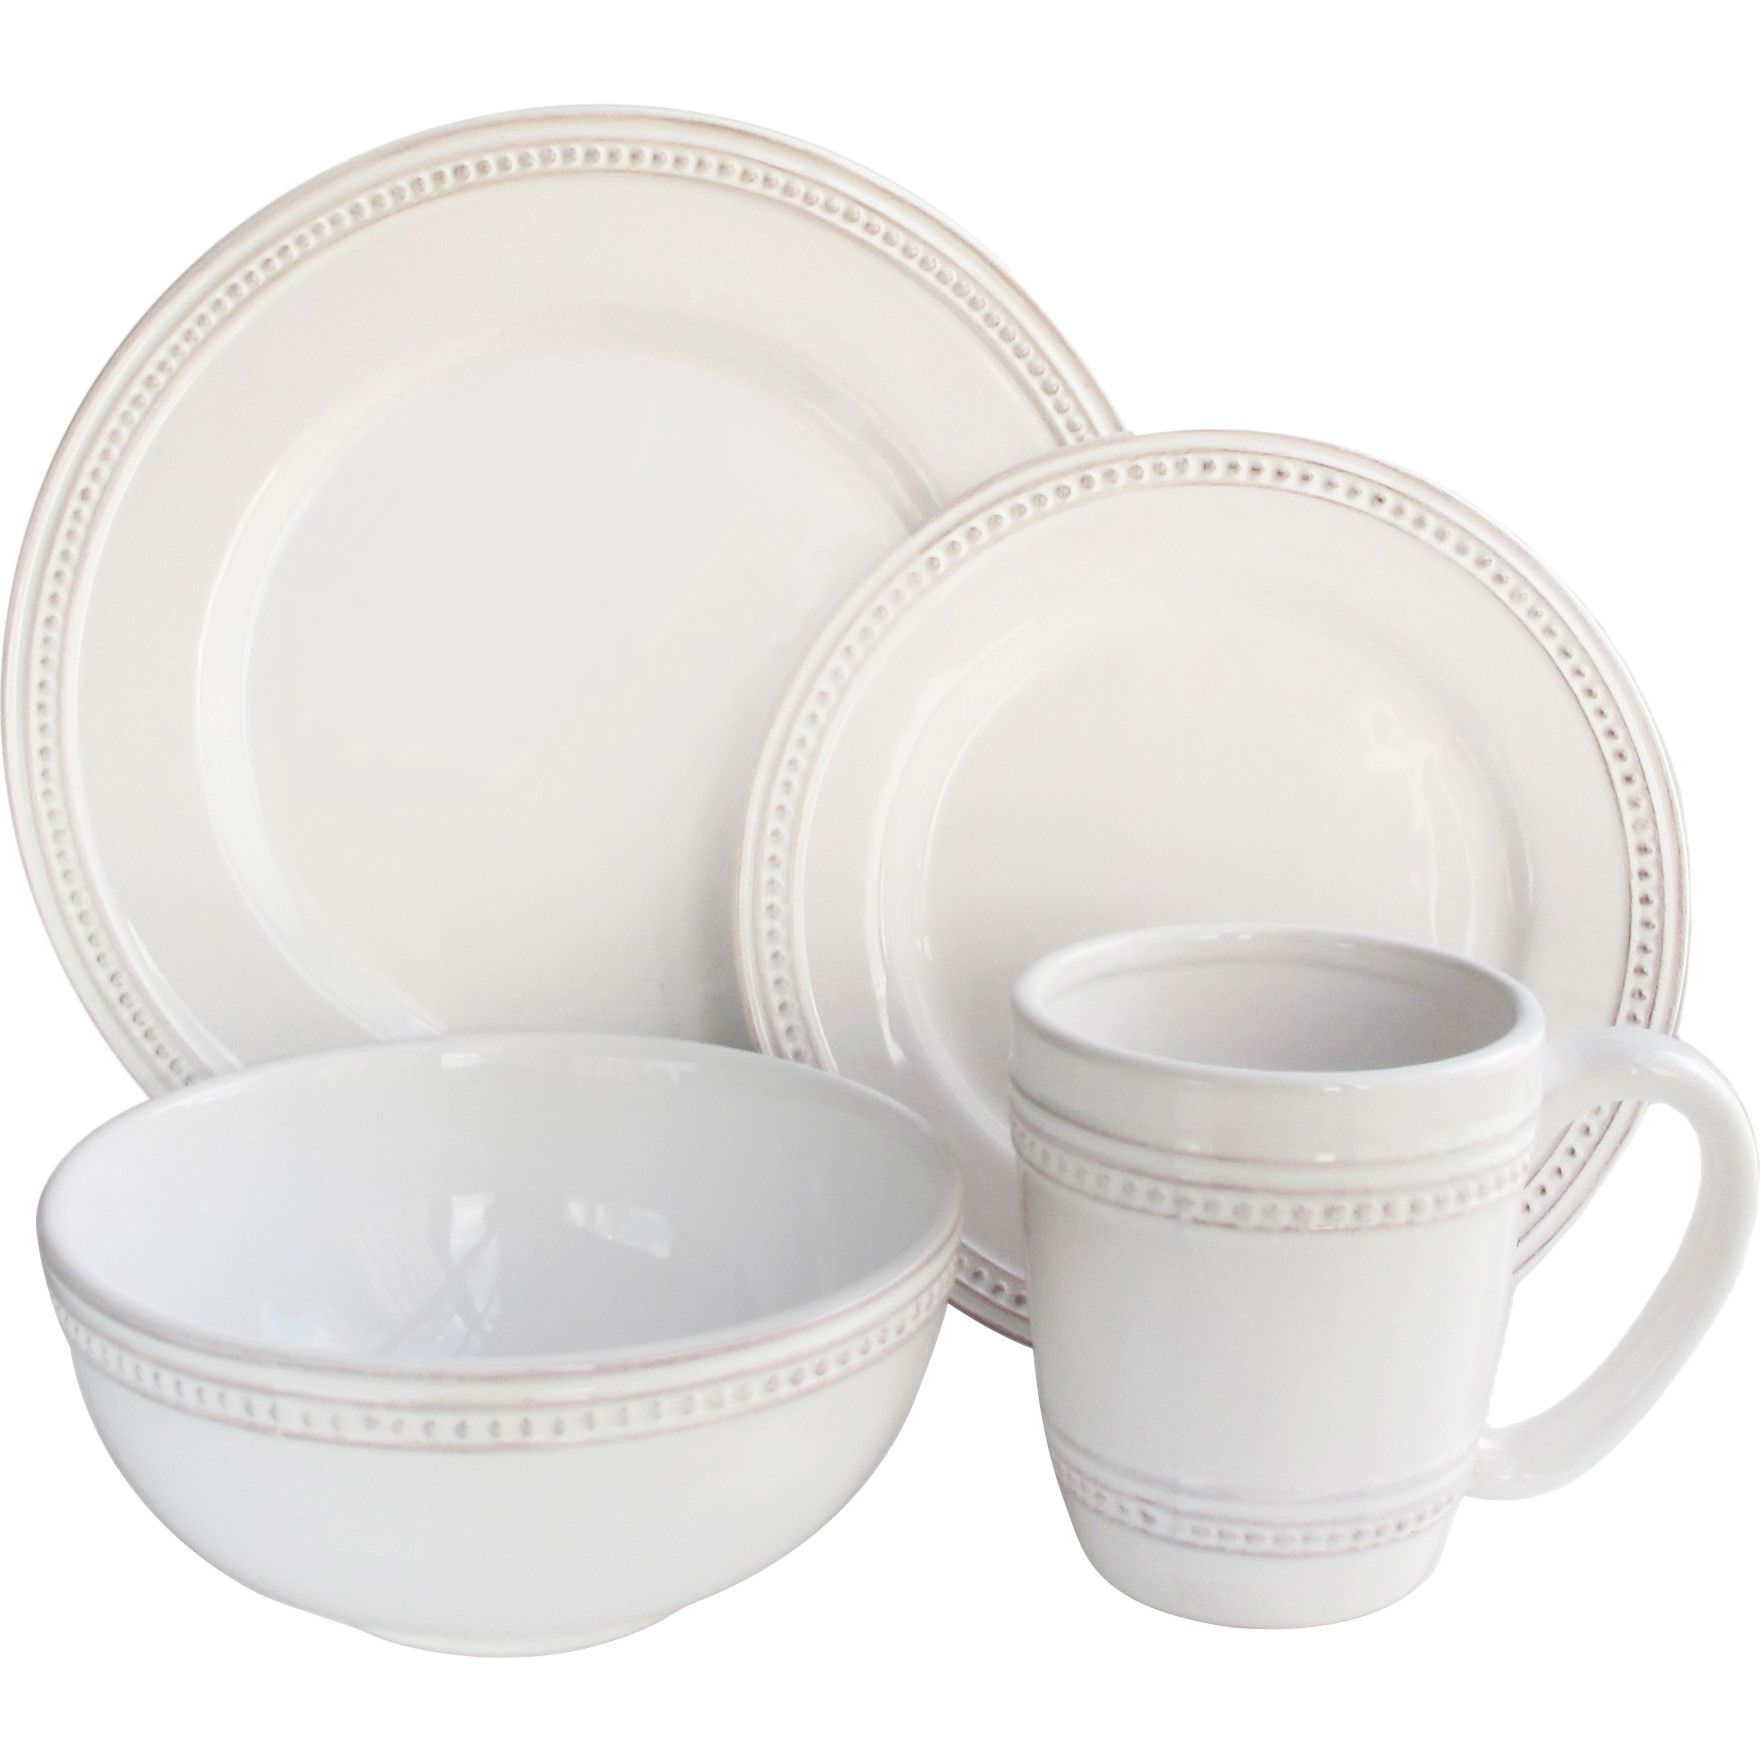 laurel foundry modern farmhouse hauser piece dinnerware set  - laurel foundry modern farmhouse hauser piece dinnerware set